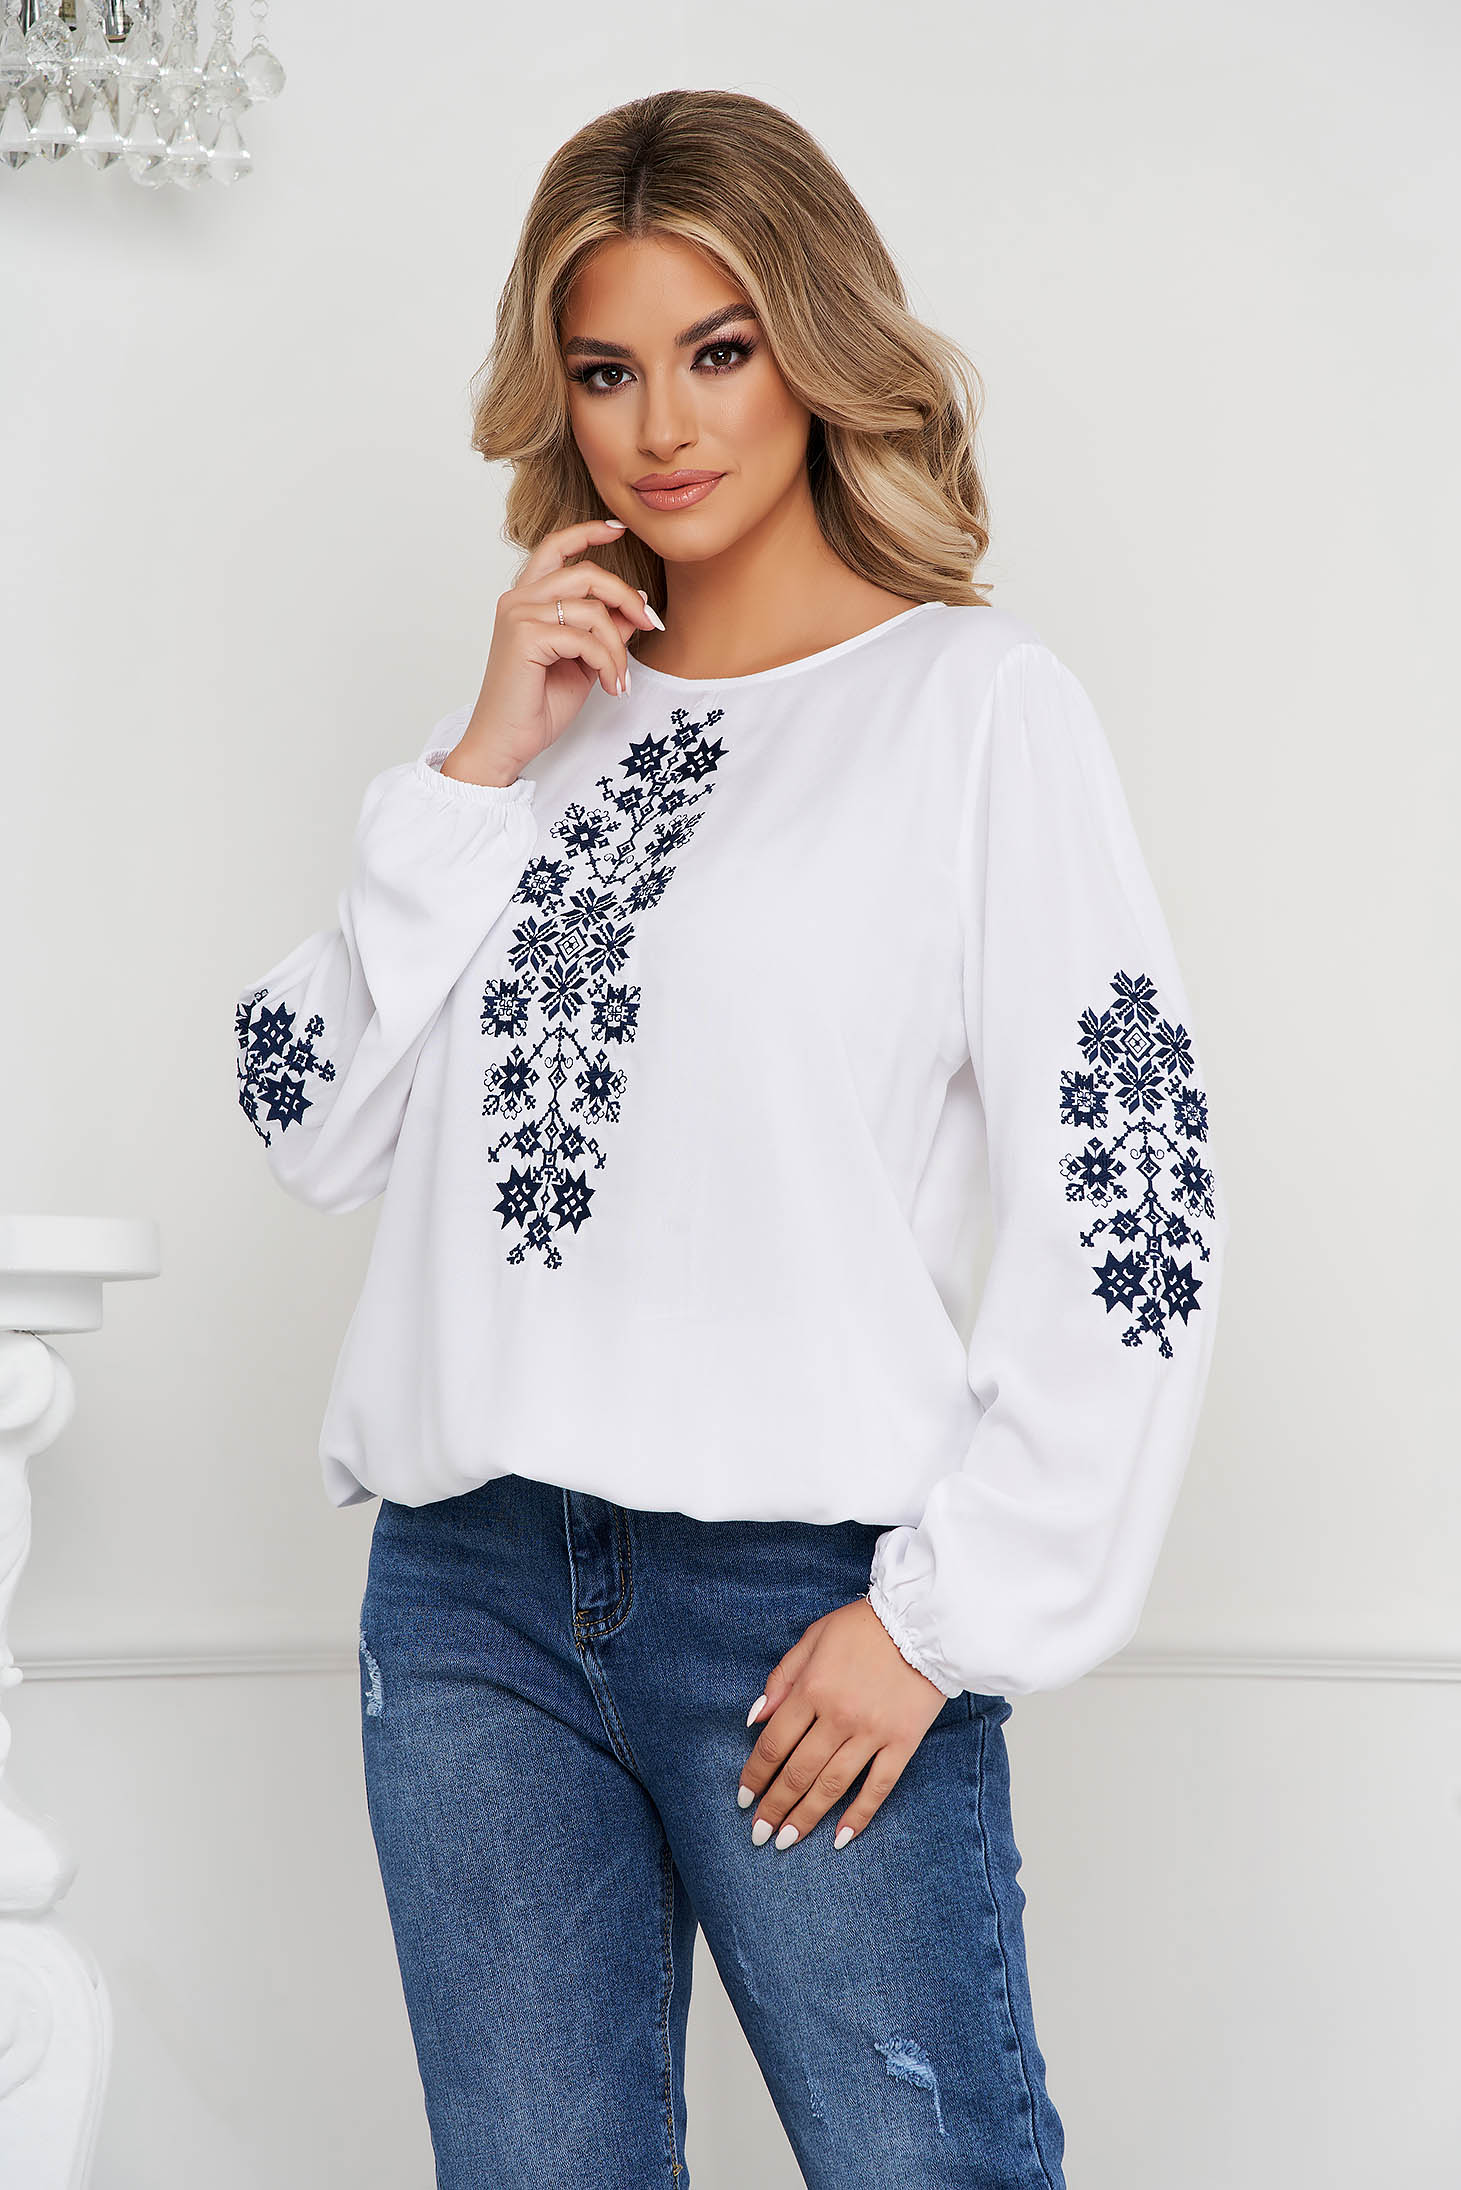 Darkblue women`s blouse cotton loose fit with embroidery details